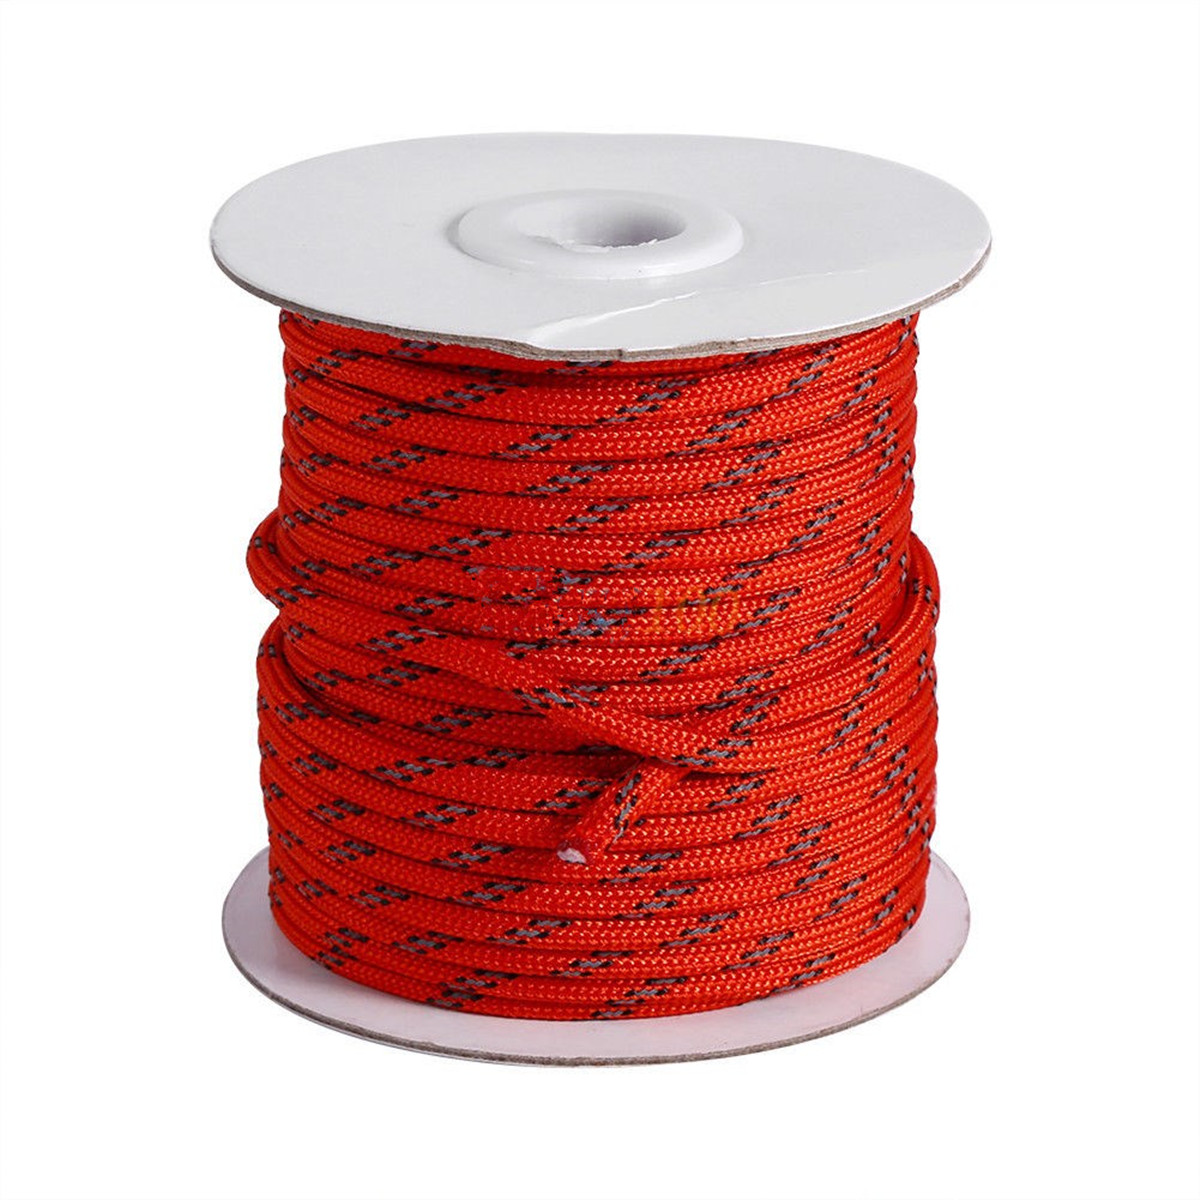 20M/65.62FT Camping Tent Sunshade Reflective Reel Rope Awning Paracord String Line 5mm